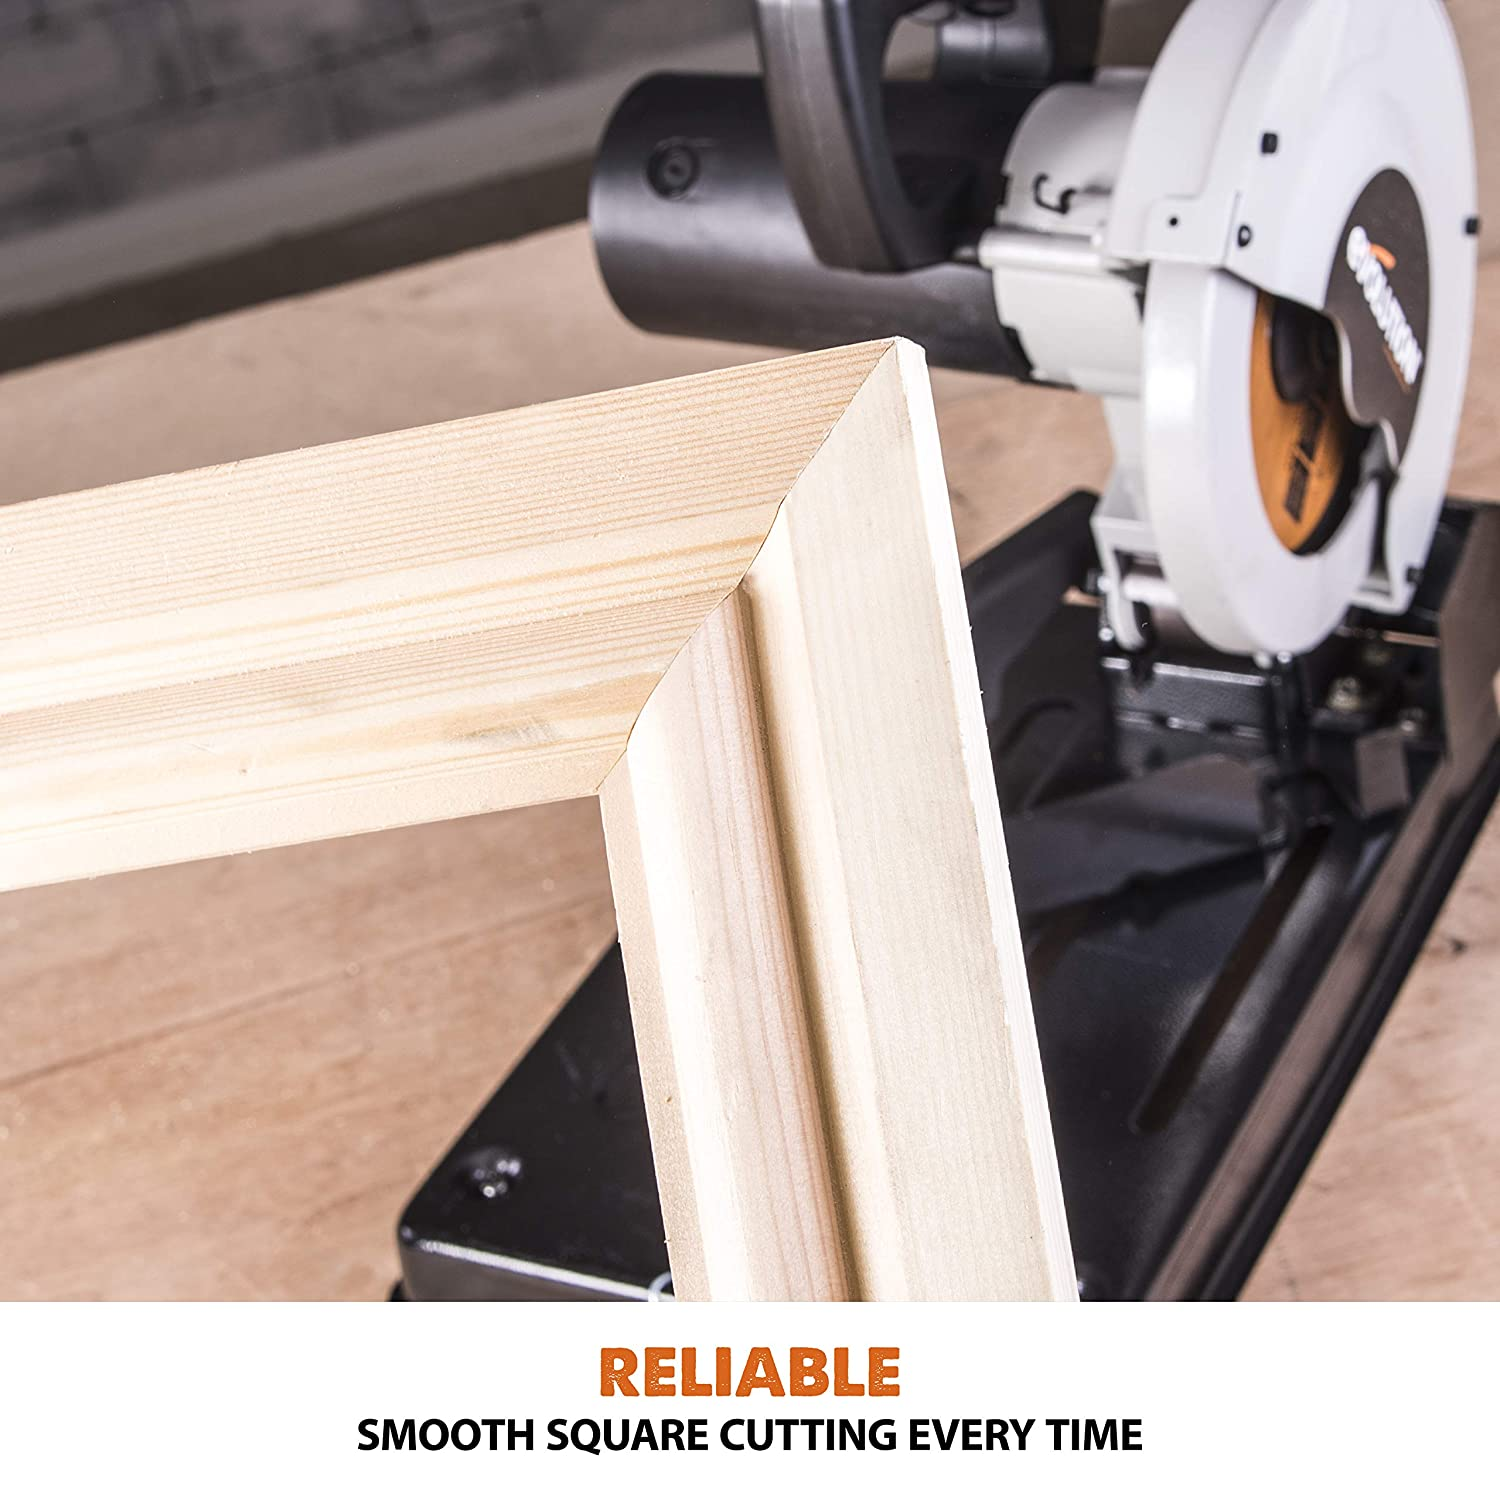 185 mm 185 mm Evolution Power Tools Build RAGE4 Multi-Purpose Chop Saw 230 V with RAGE Multi-Purpose Carbide-Tipped Blade